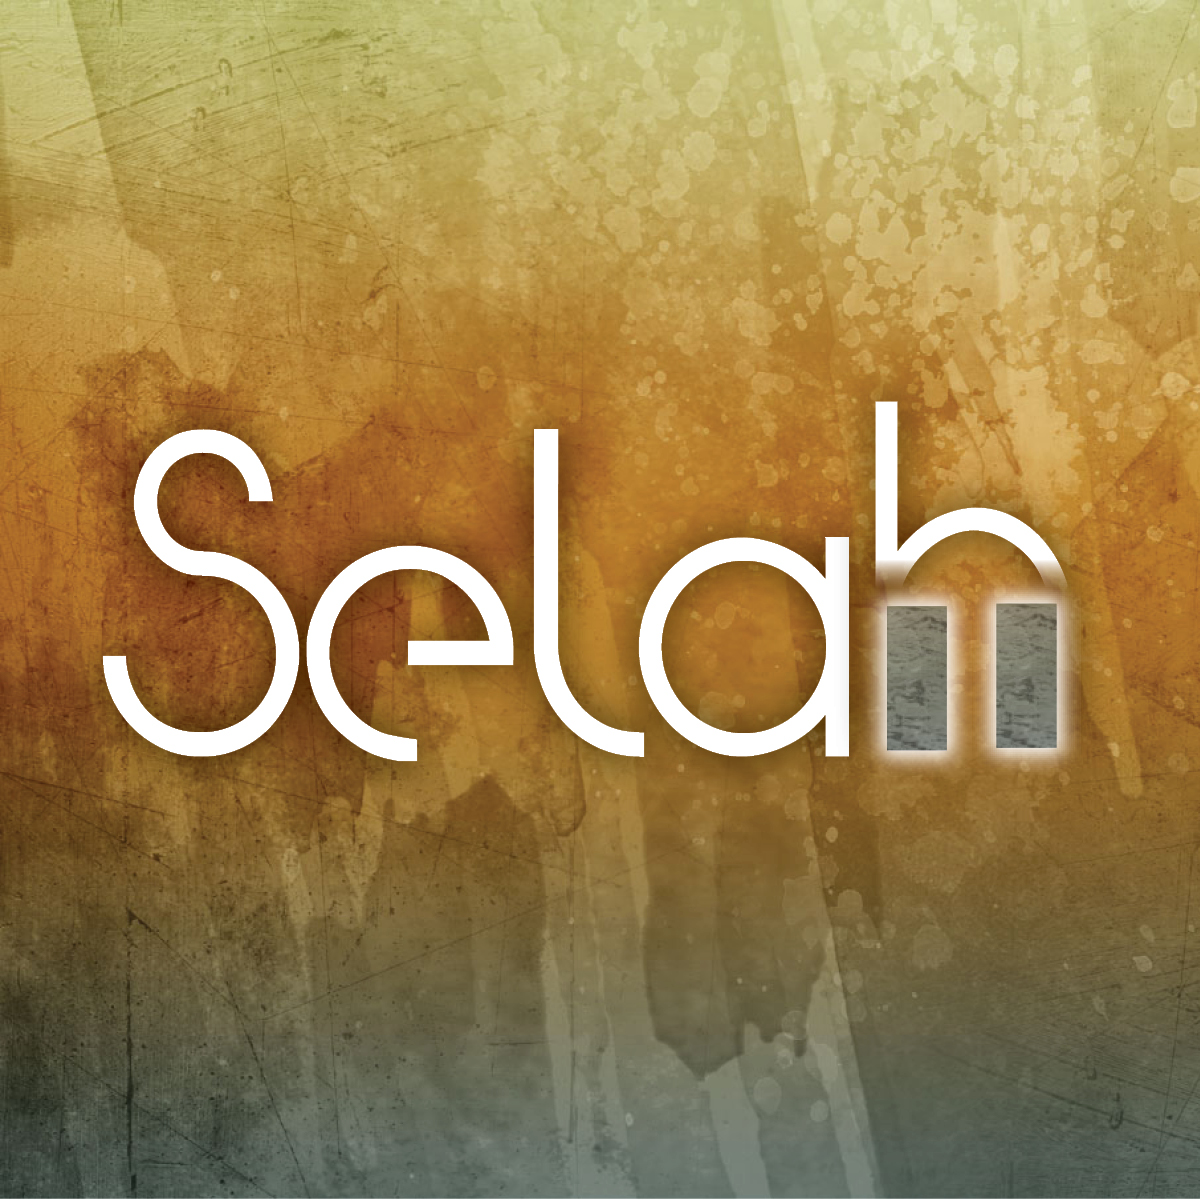 selah single guys Selah center akron 59 likes 2 talking about this selah center seeks to help children & families wounded by addiction pause for creativity and rest.